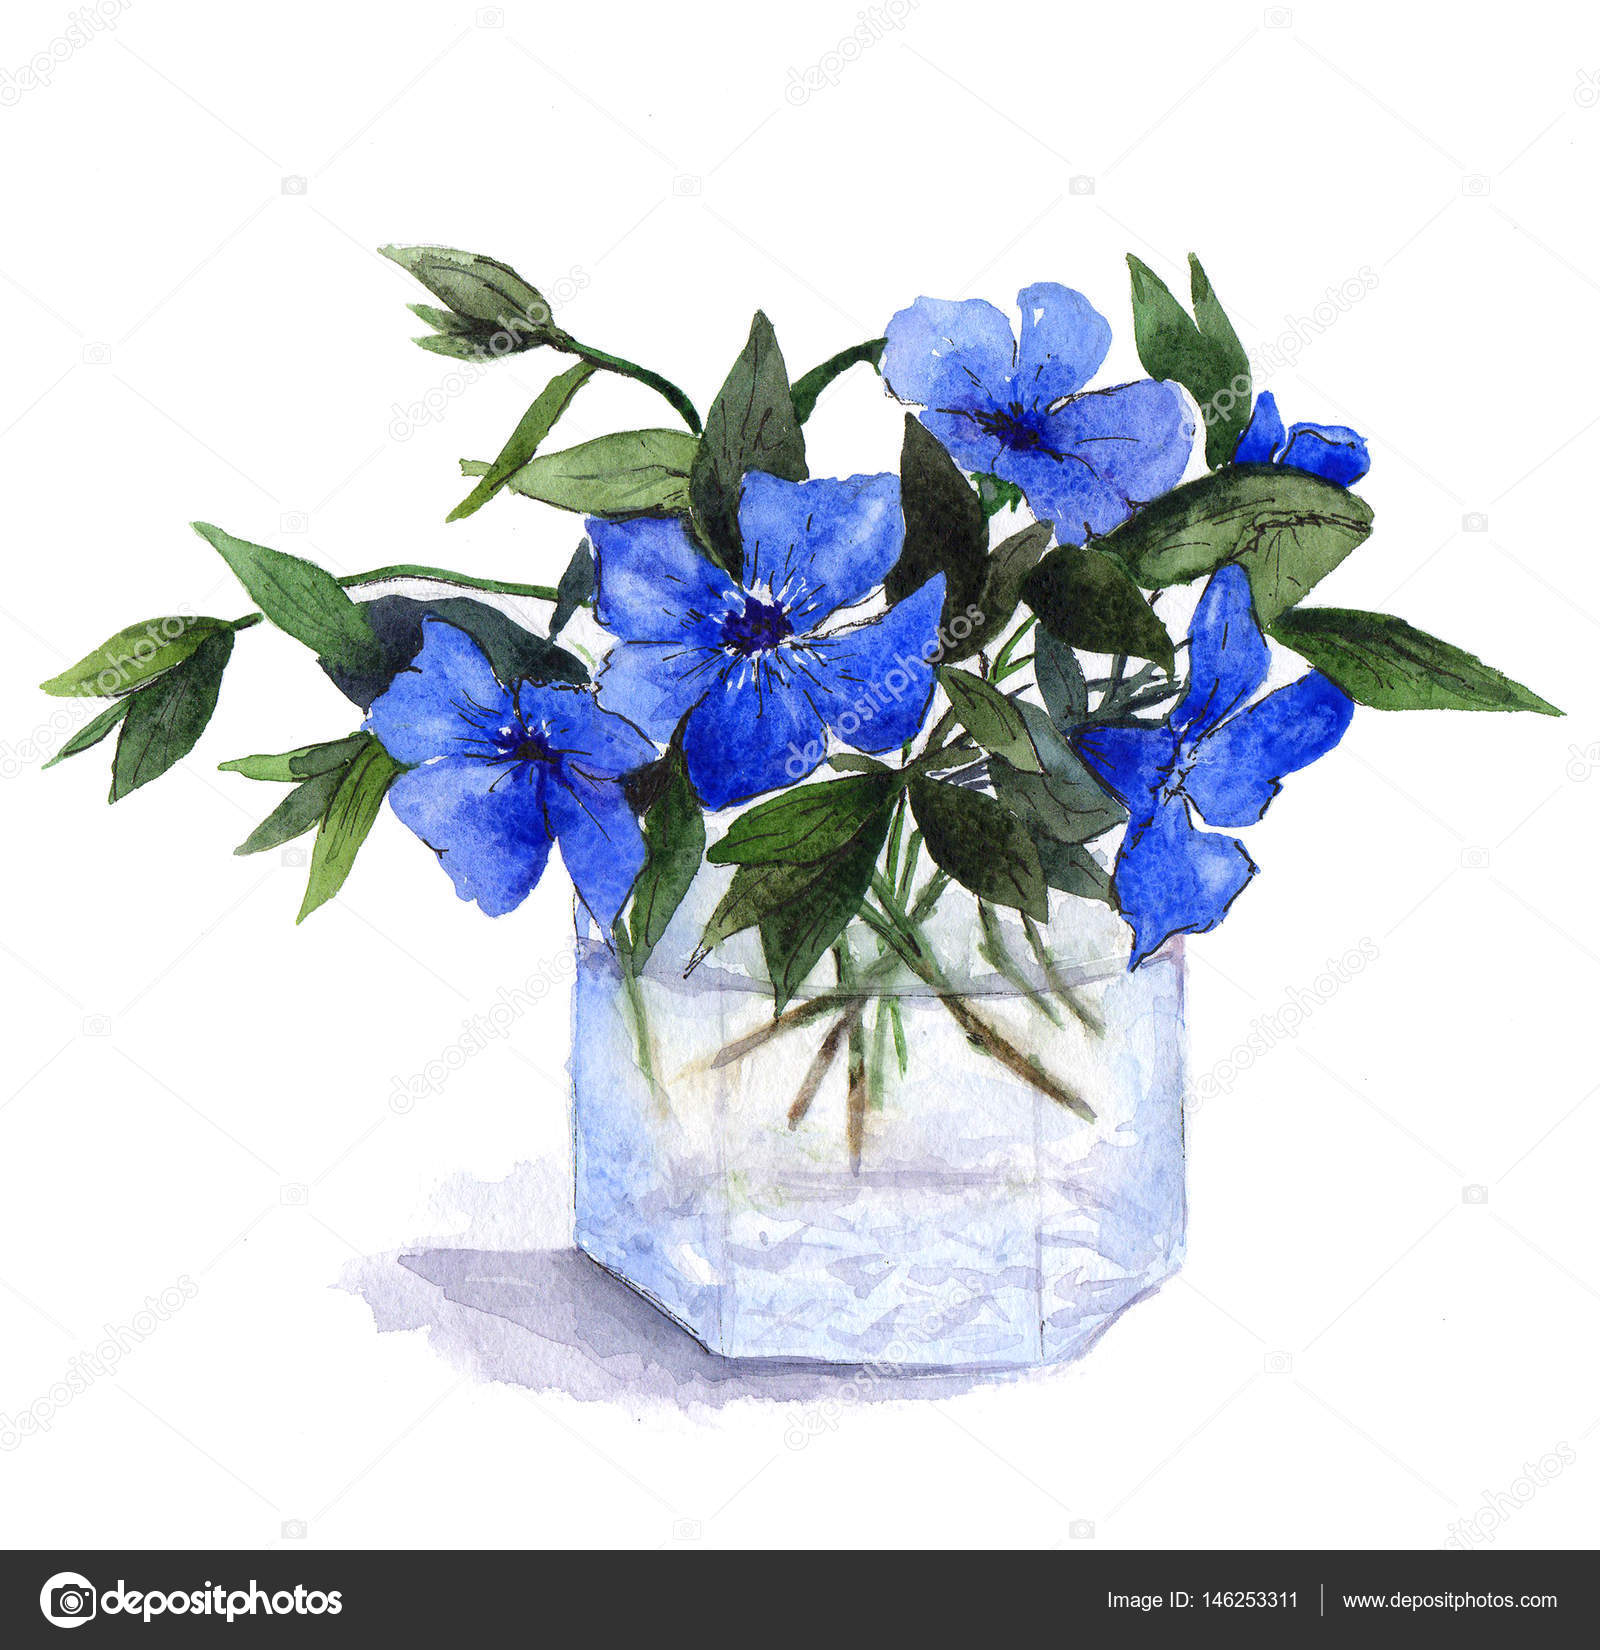 Bouquet of blue periwinkle flowers in glass vase watercolor bouquet of blue periwinkle flowers in glass vase watercolor illustration on white background photo by natalypaint reviewsmspy